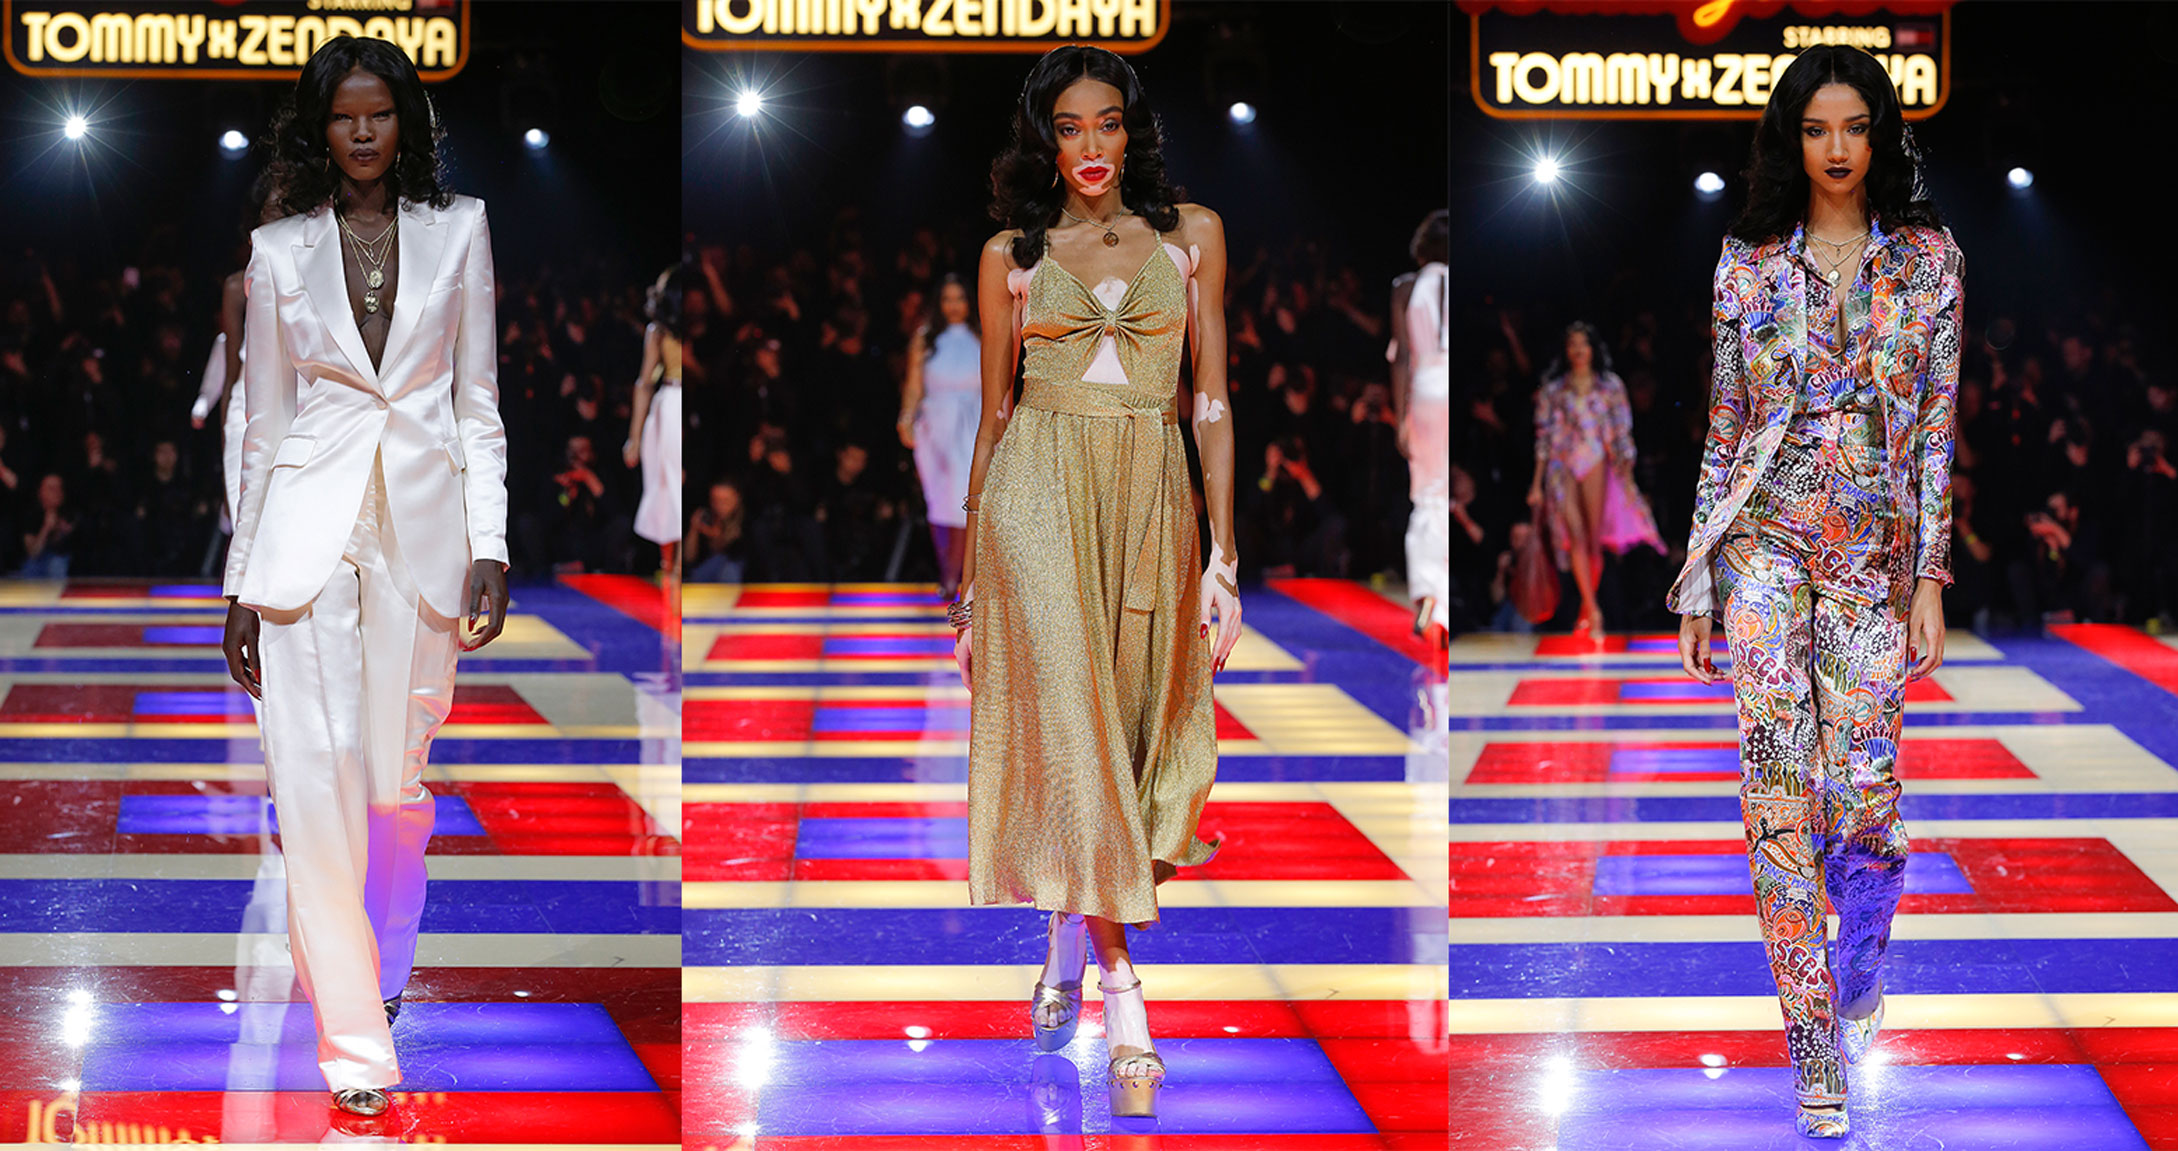 11c5aed4cfe That 70s Show - Tommy Hilfiger by Zendaya - THE FALL